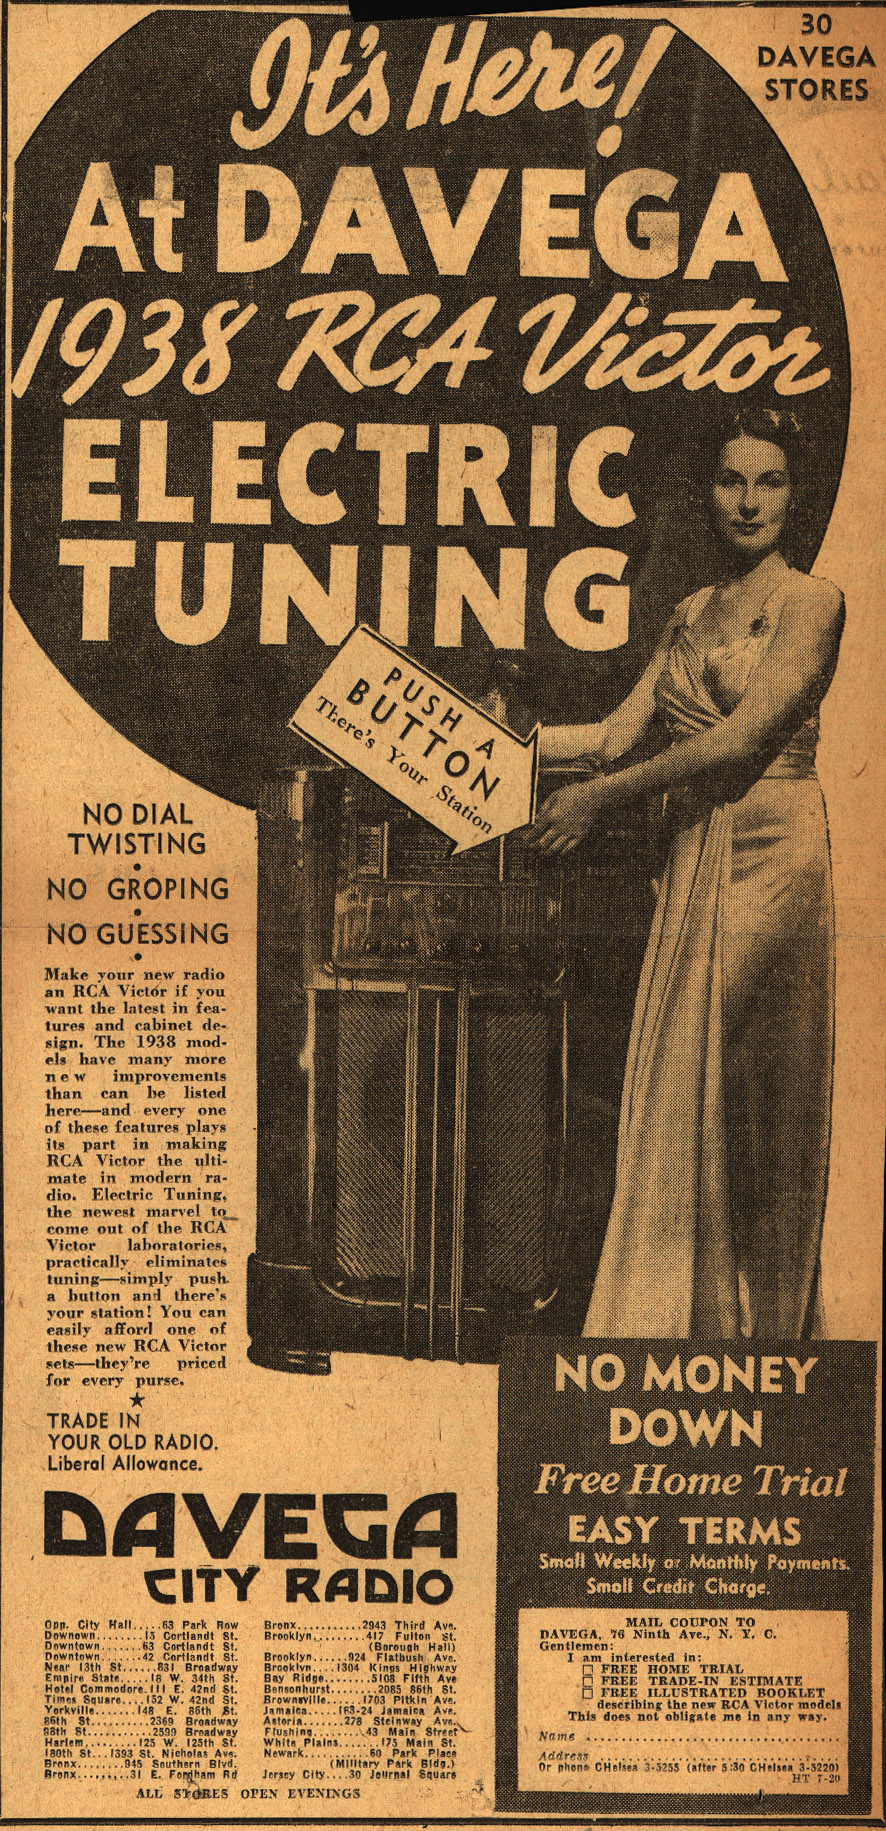 Its_Here_At_Davega_1938_RCA_Victor_Electric_Tuning